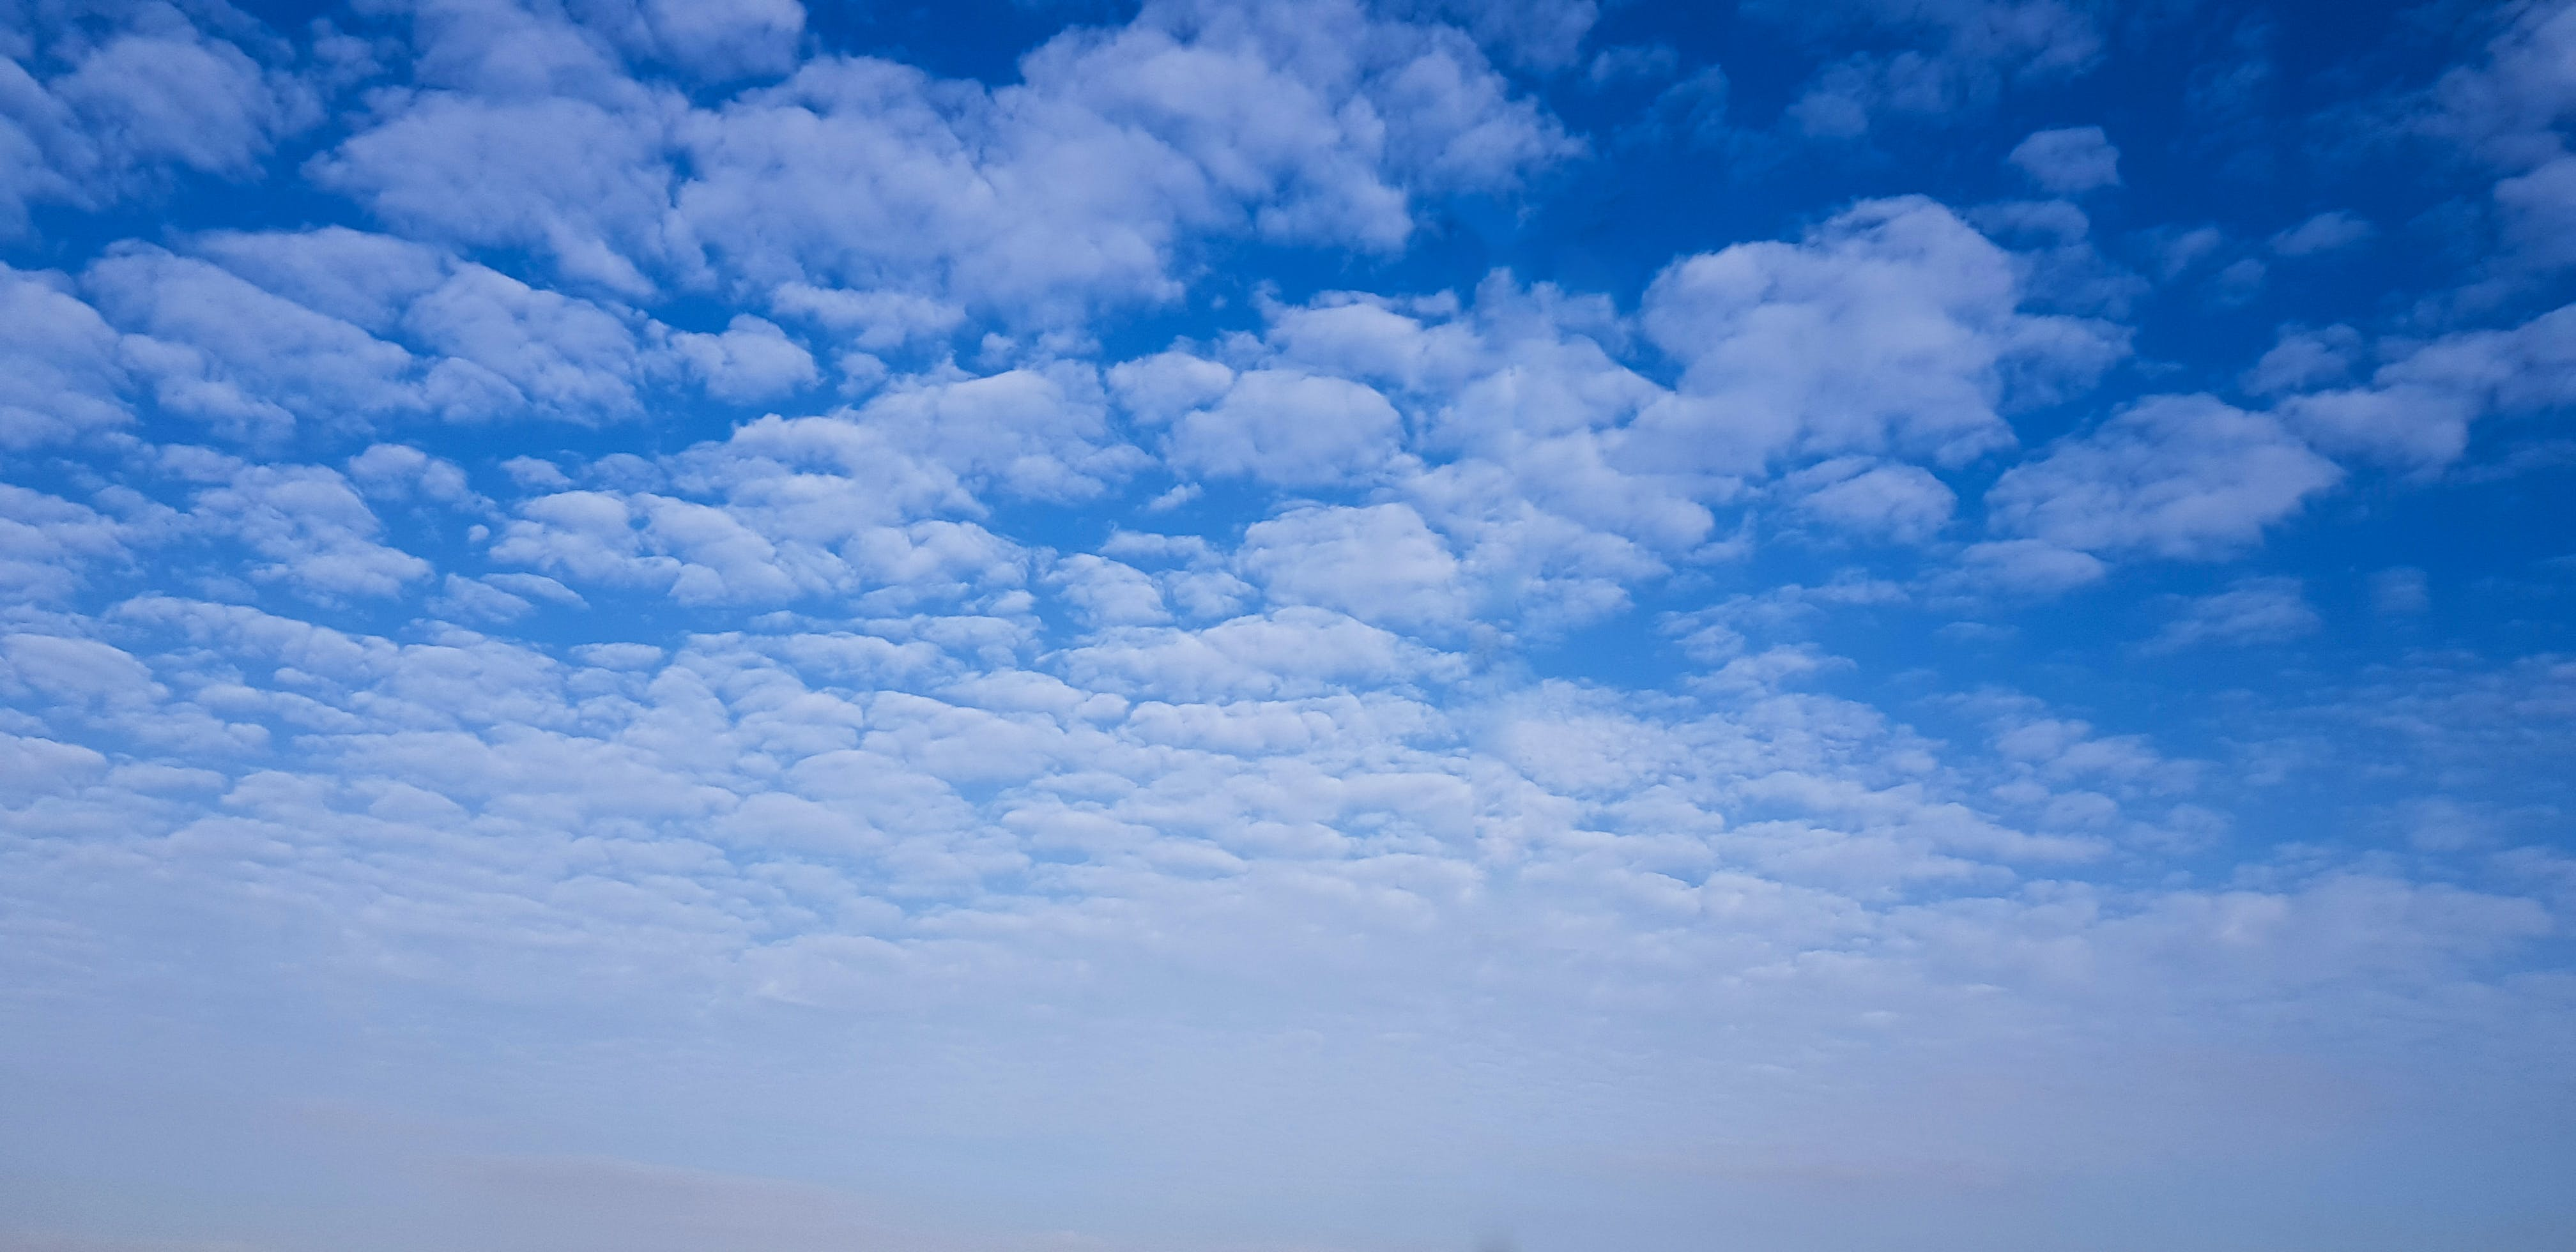 Free stock photo of ash cloud, blue sky, cloud formation, cloudiness